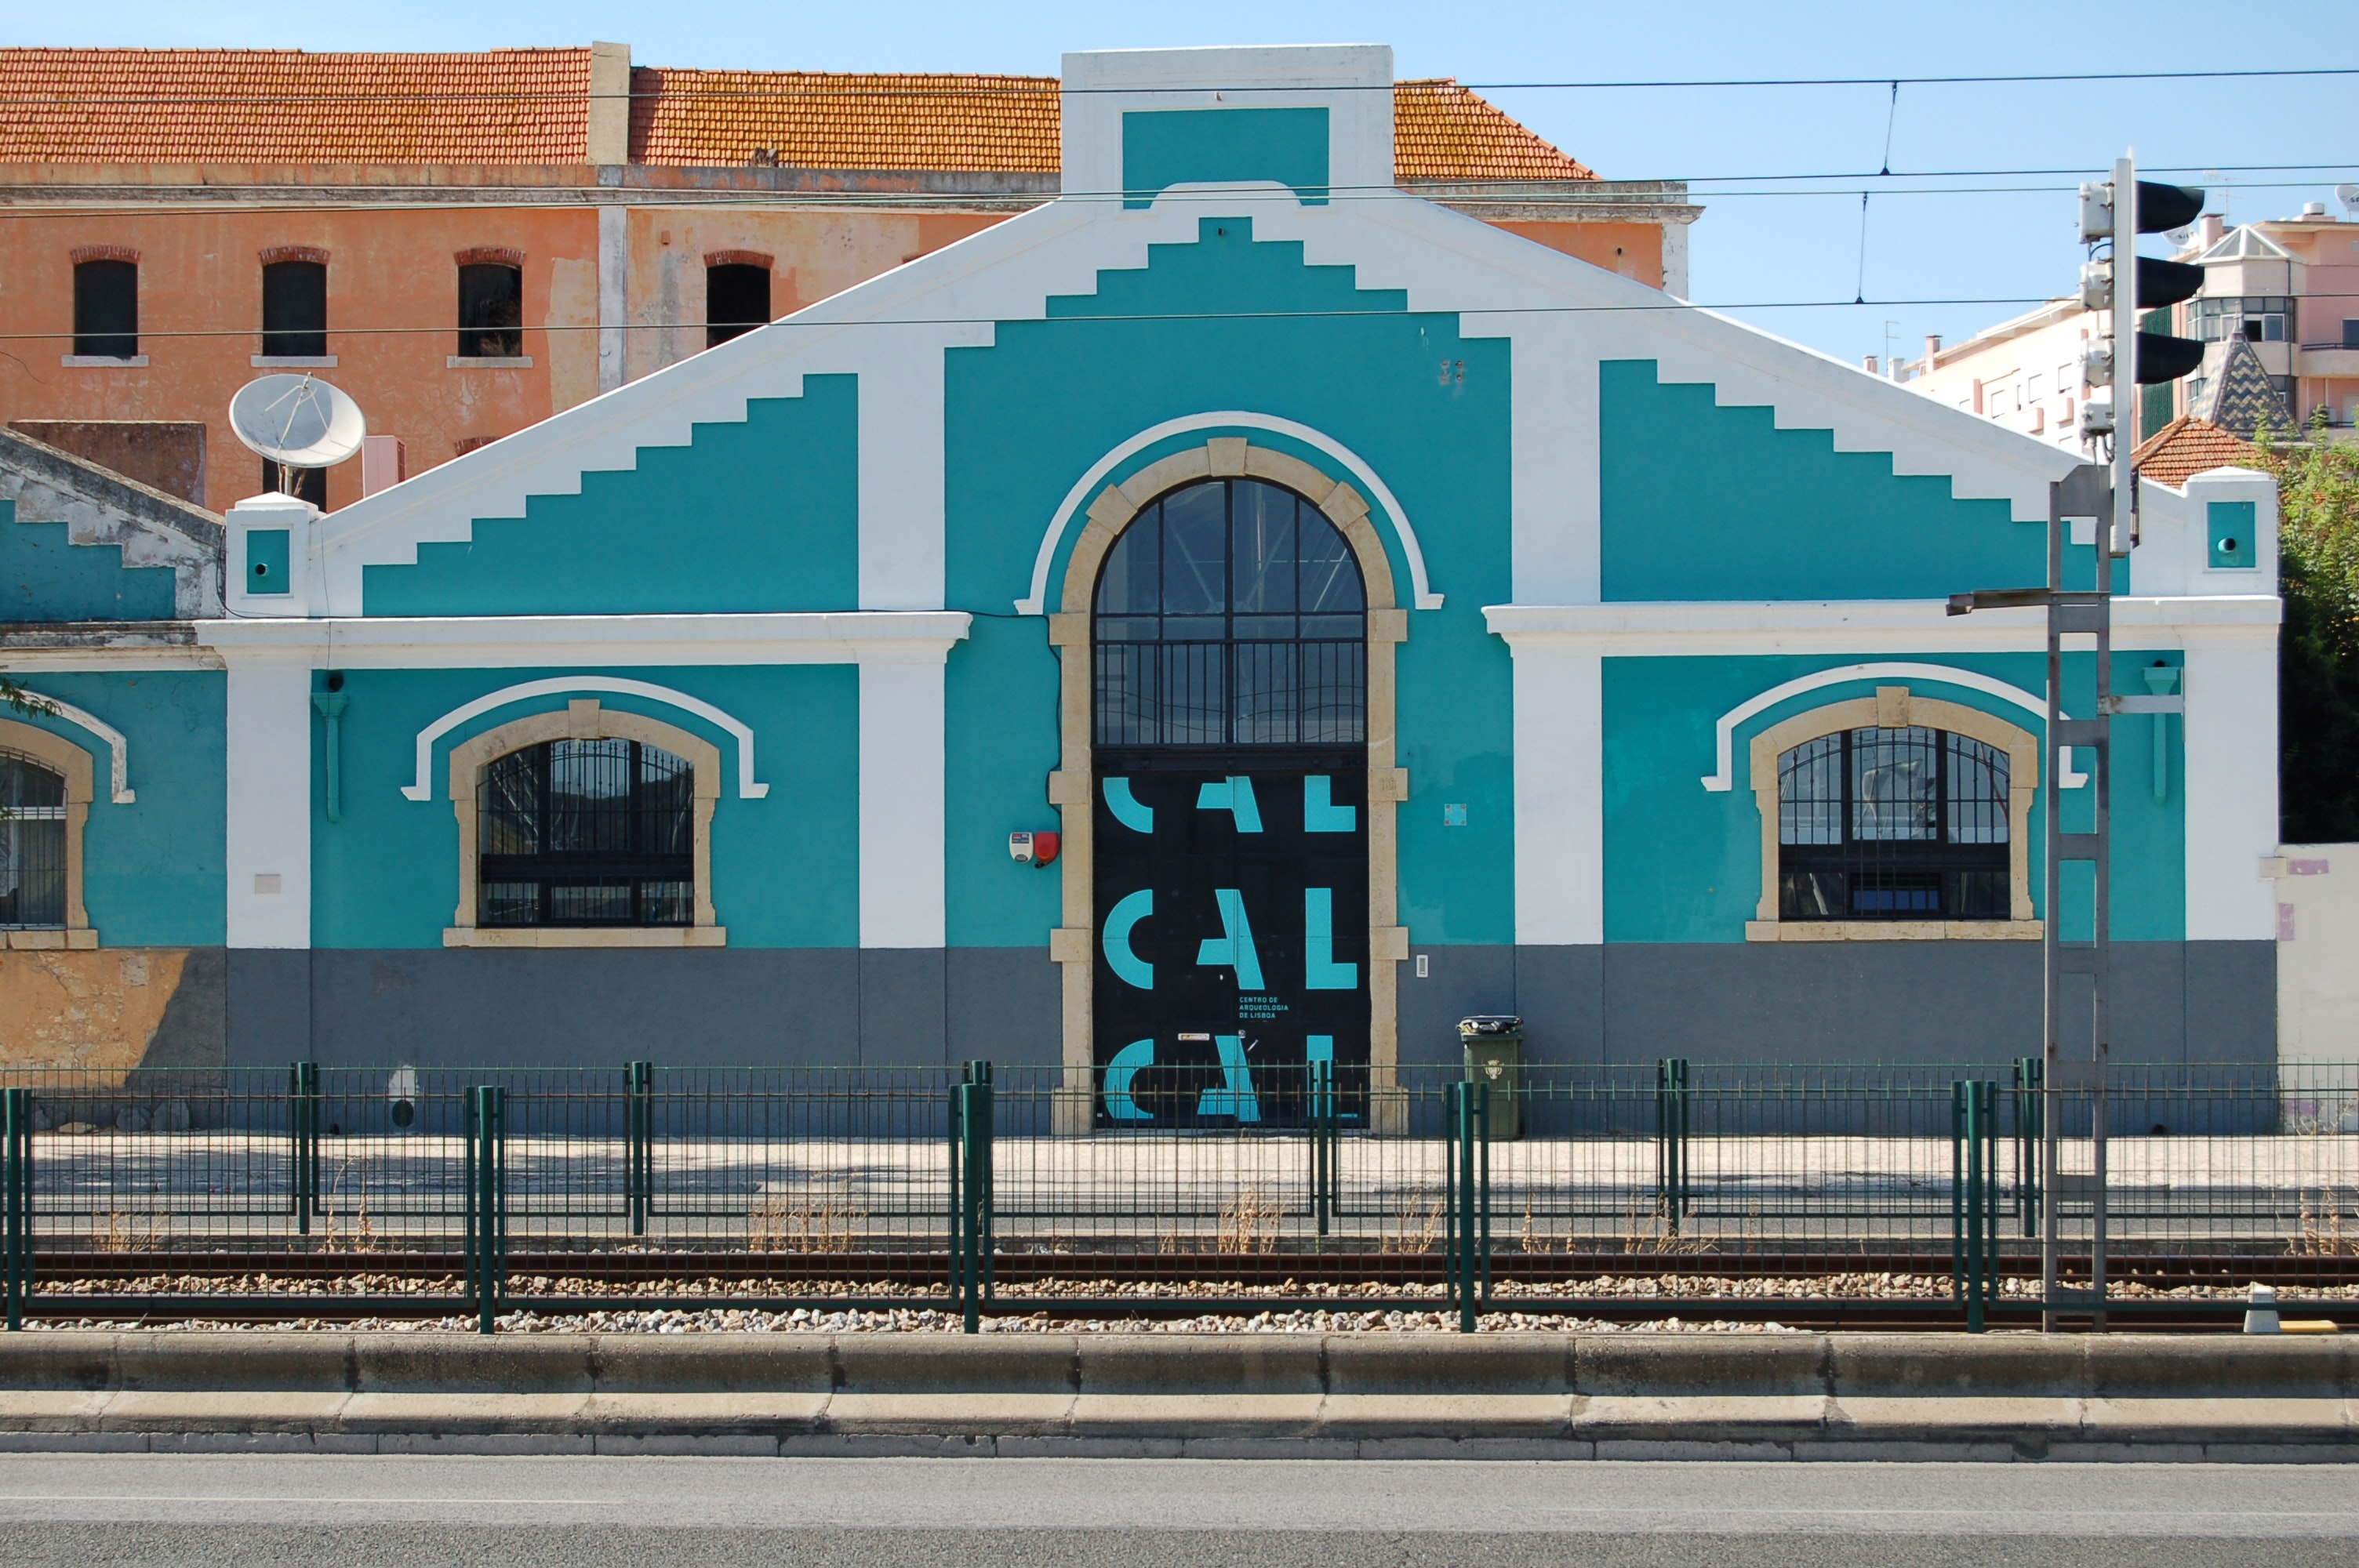 teal house near railway